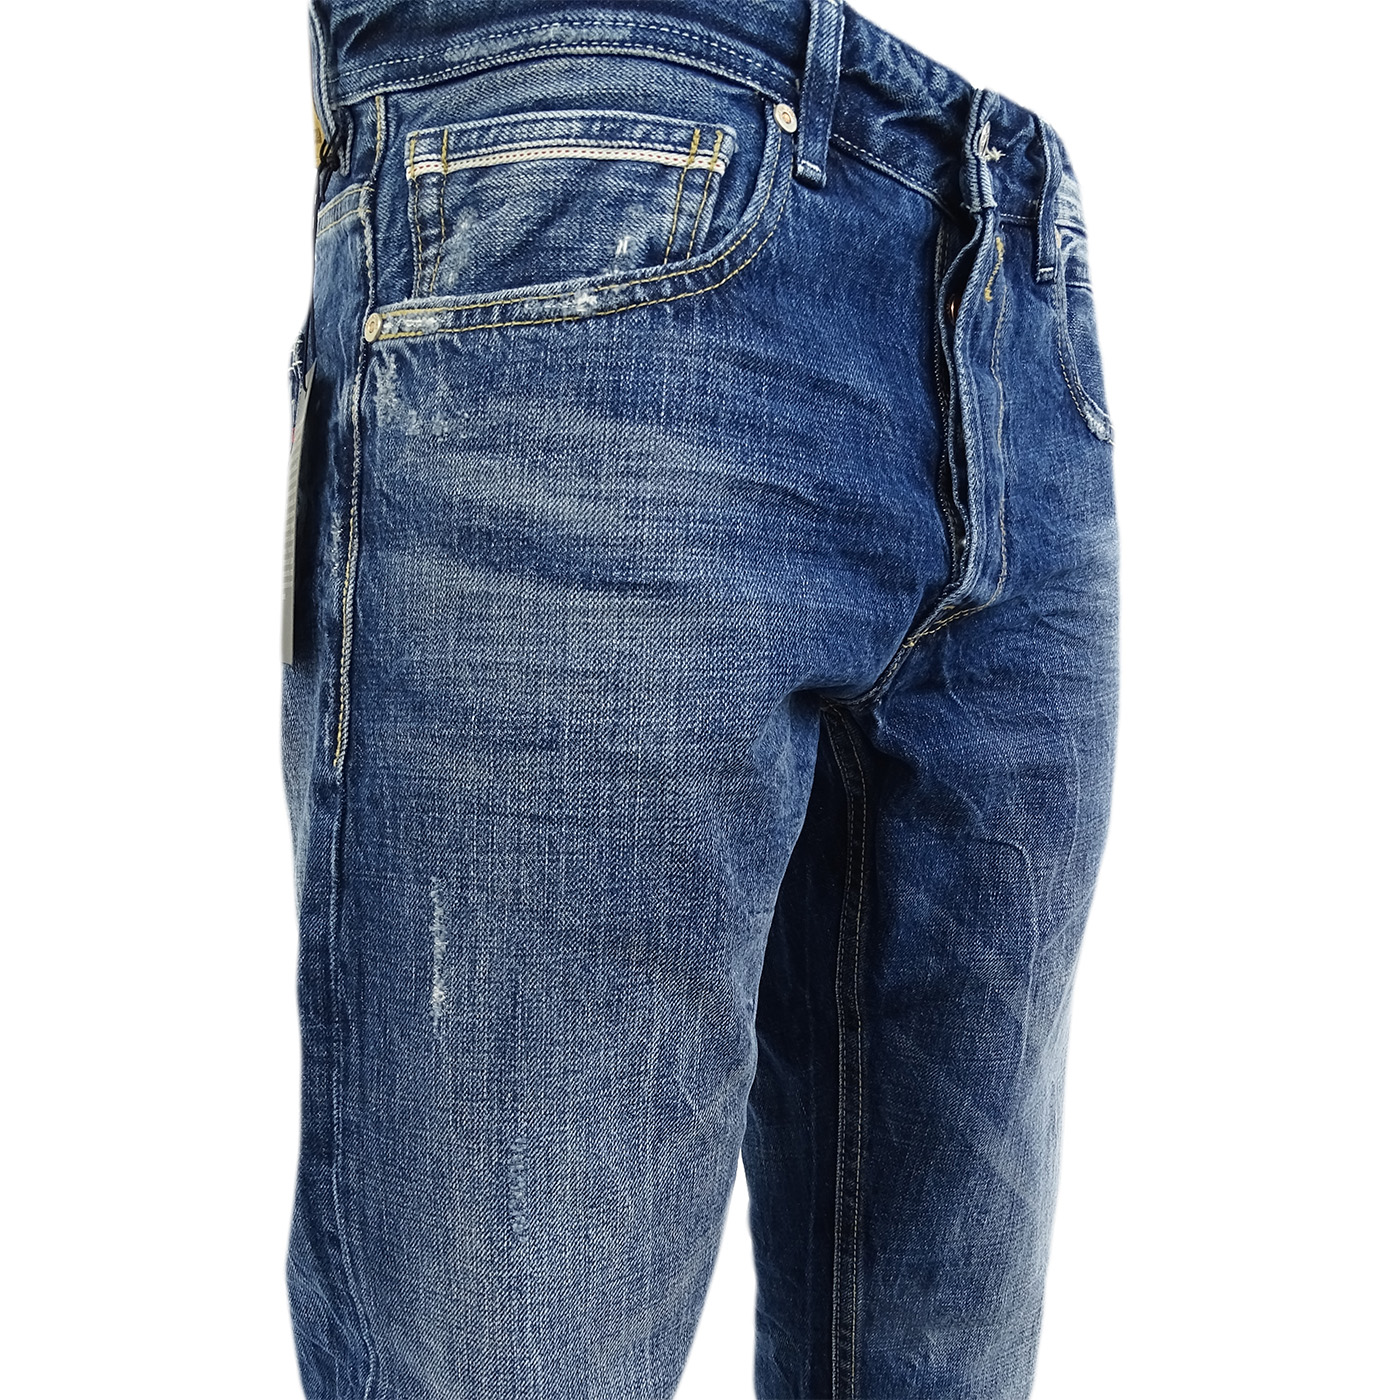 Replay Dark Blue Jean - Grover - Straight Fit With Distressed Finish ... 71fd175dd7